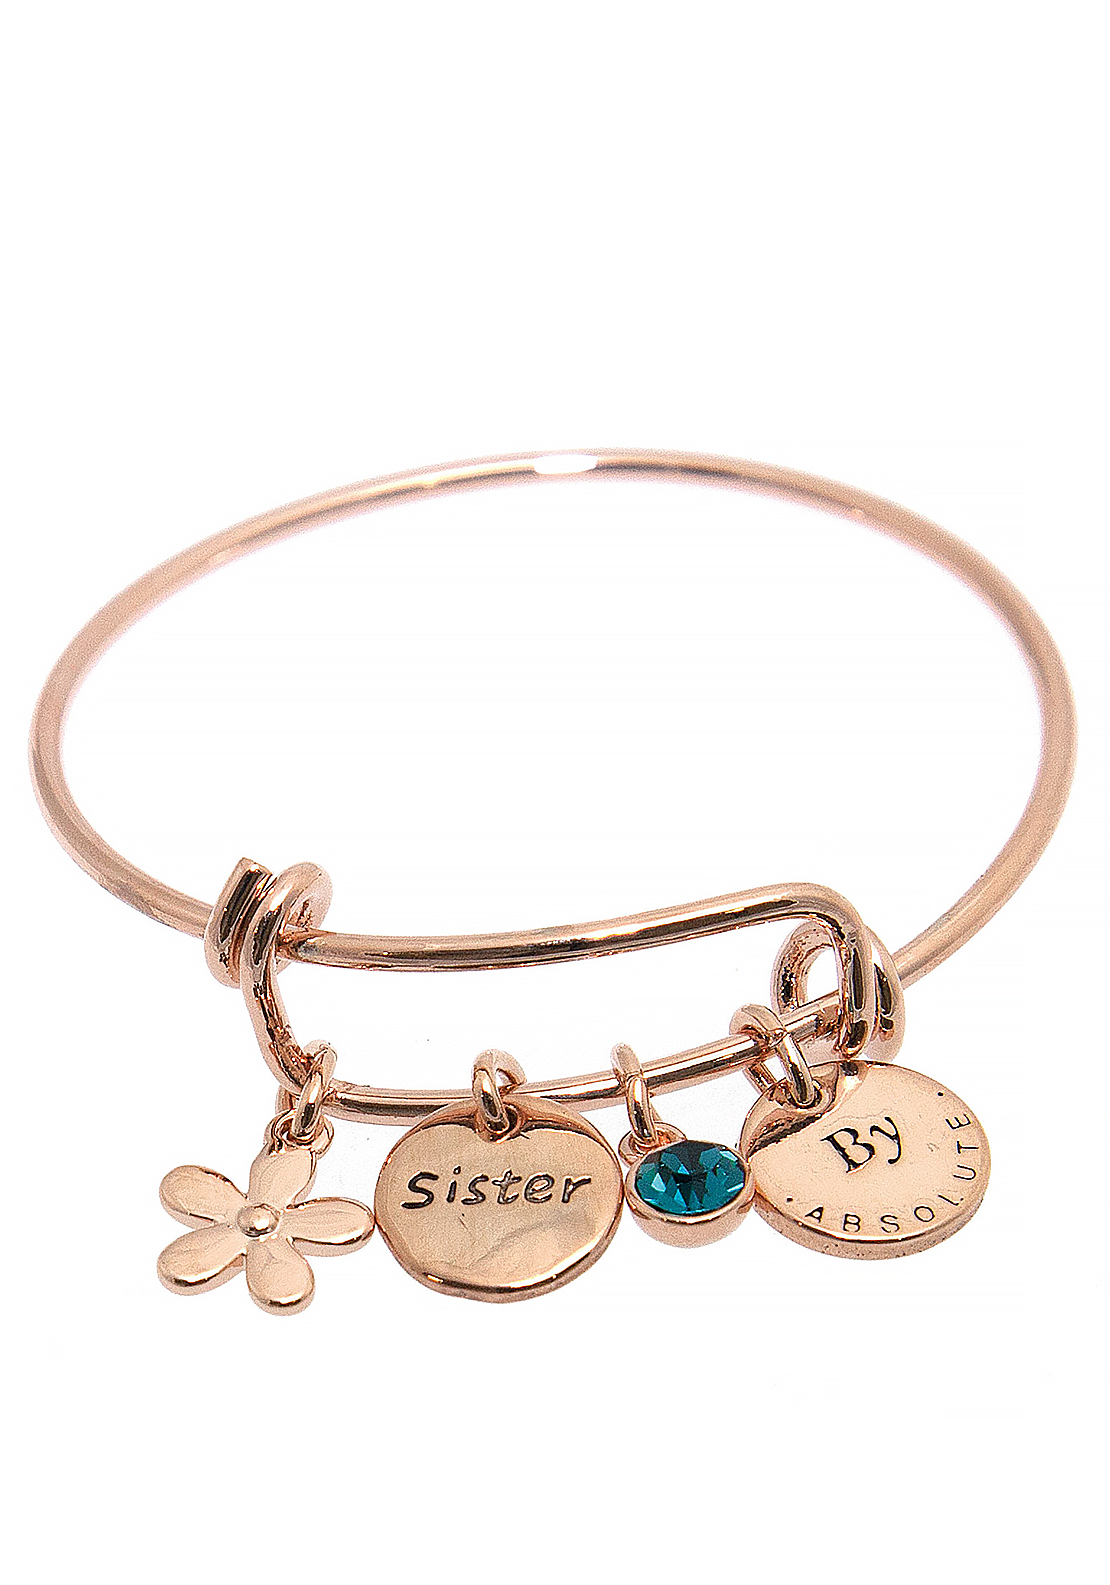 Absolute Jewellery Girls Sister Charm Bangle, Rose Gold